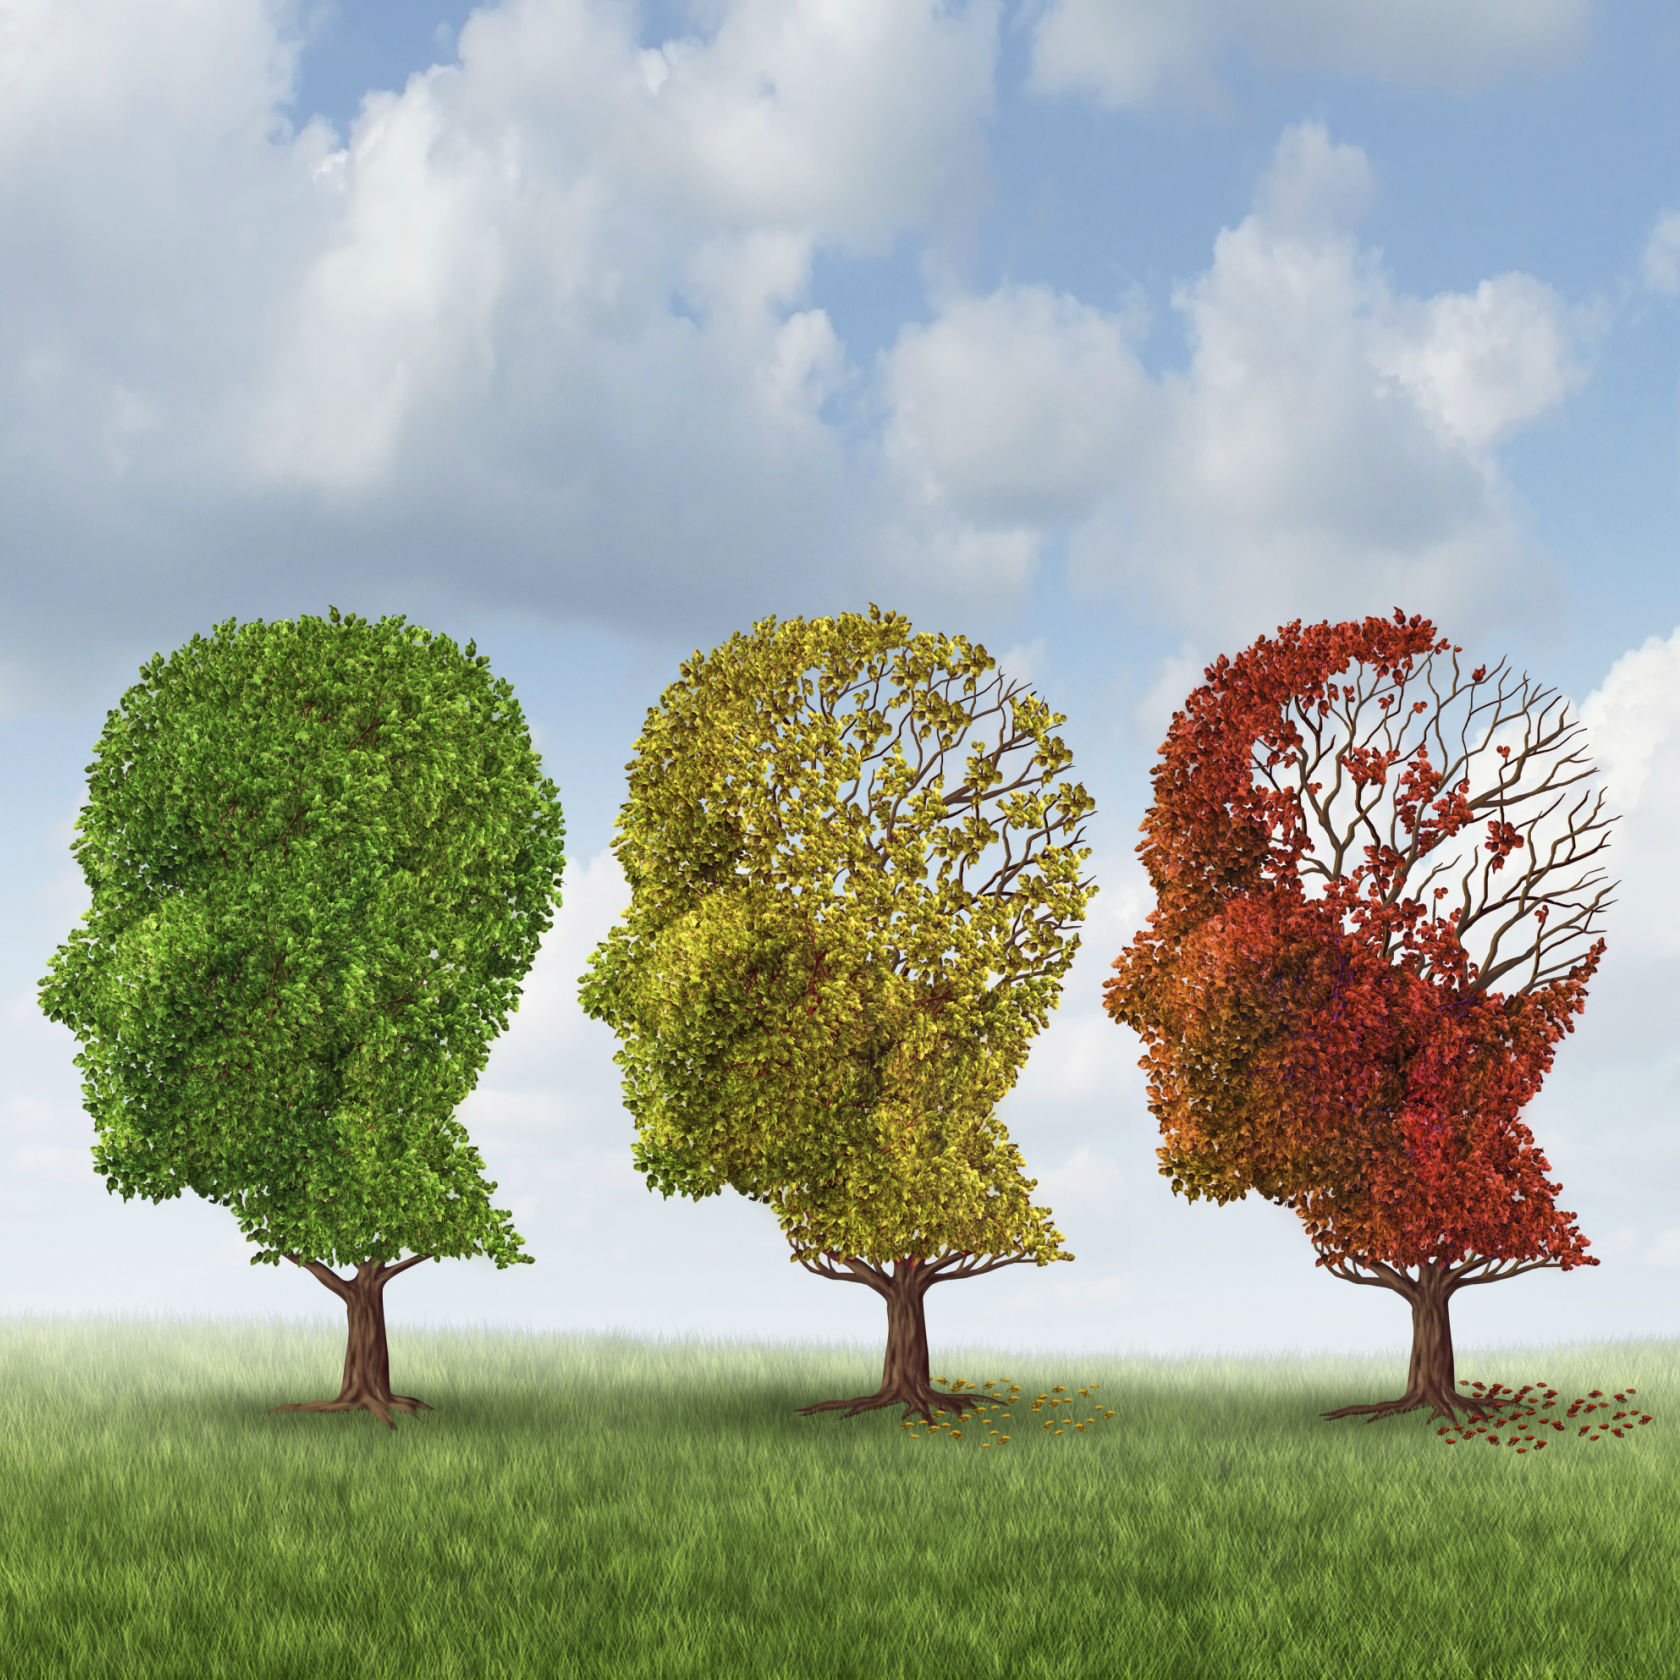 Enzyme Treatment of Gene May Reverse Effects of Alzheimer's